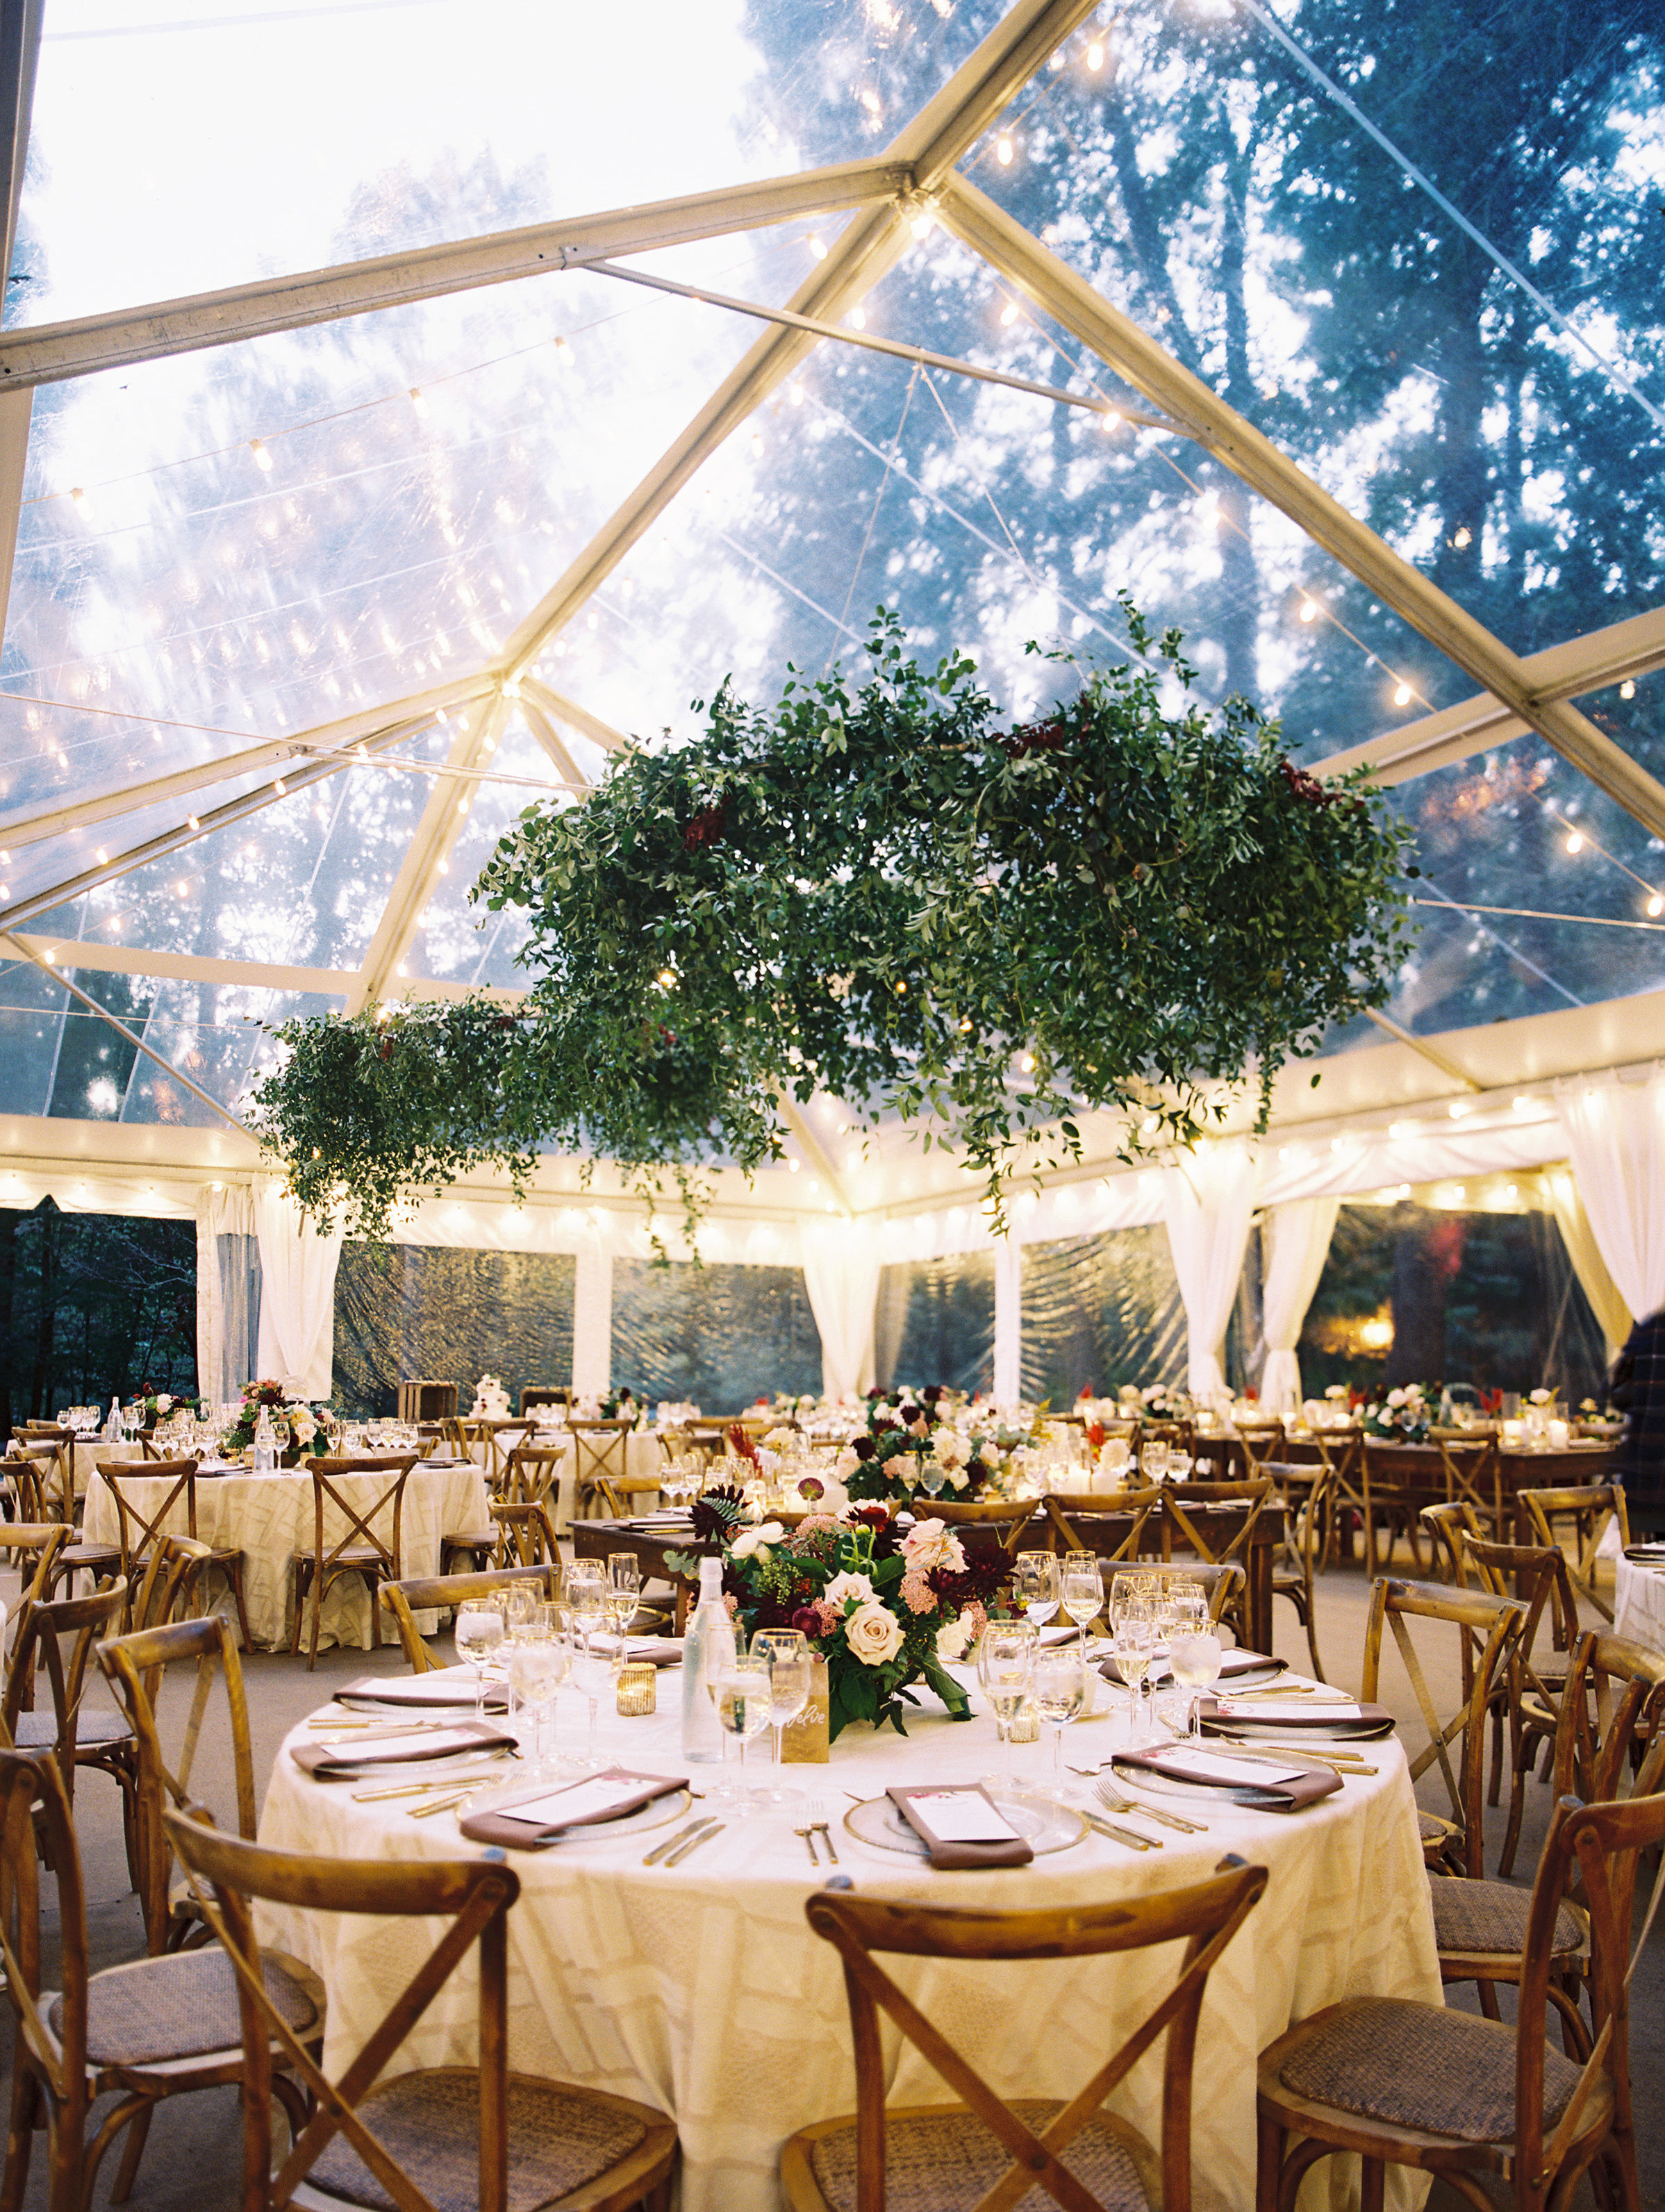 Melissa + Dave's Private Residence Tented Wedding in Bethesda, MD. Photography by Lisa Ziesing for Abby Jiu.